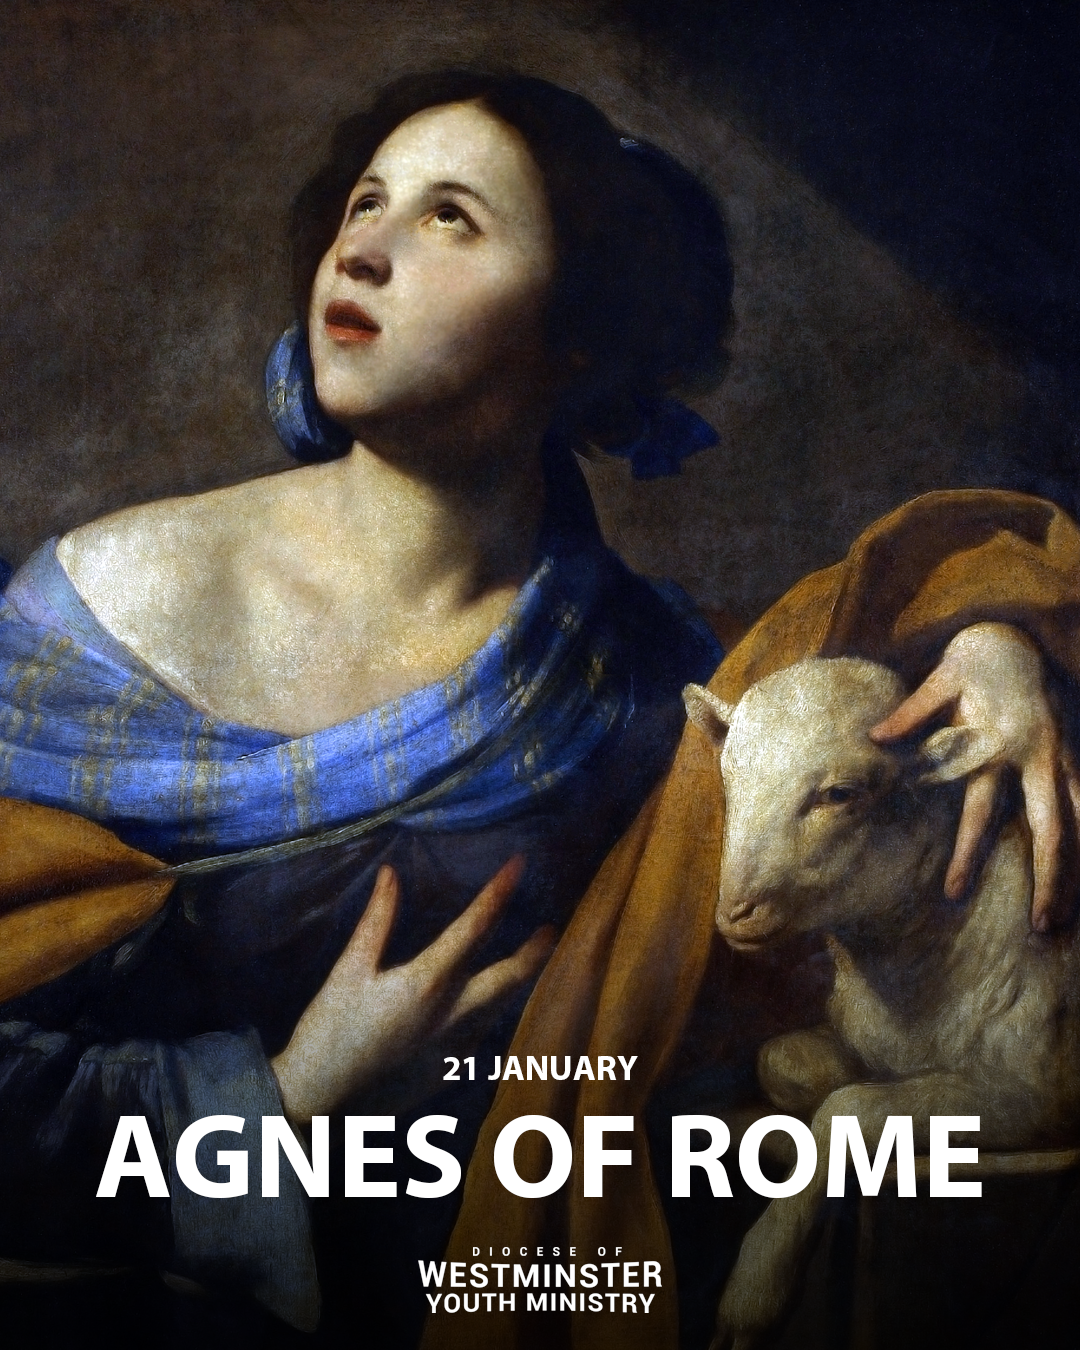 Today is the Feast Day of Saint Agnes of Rome. She is a patron saint of chastity and purity.